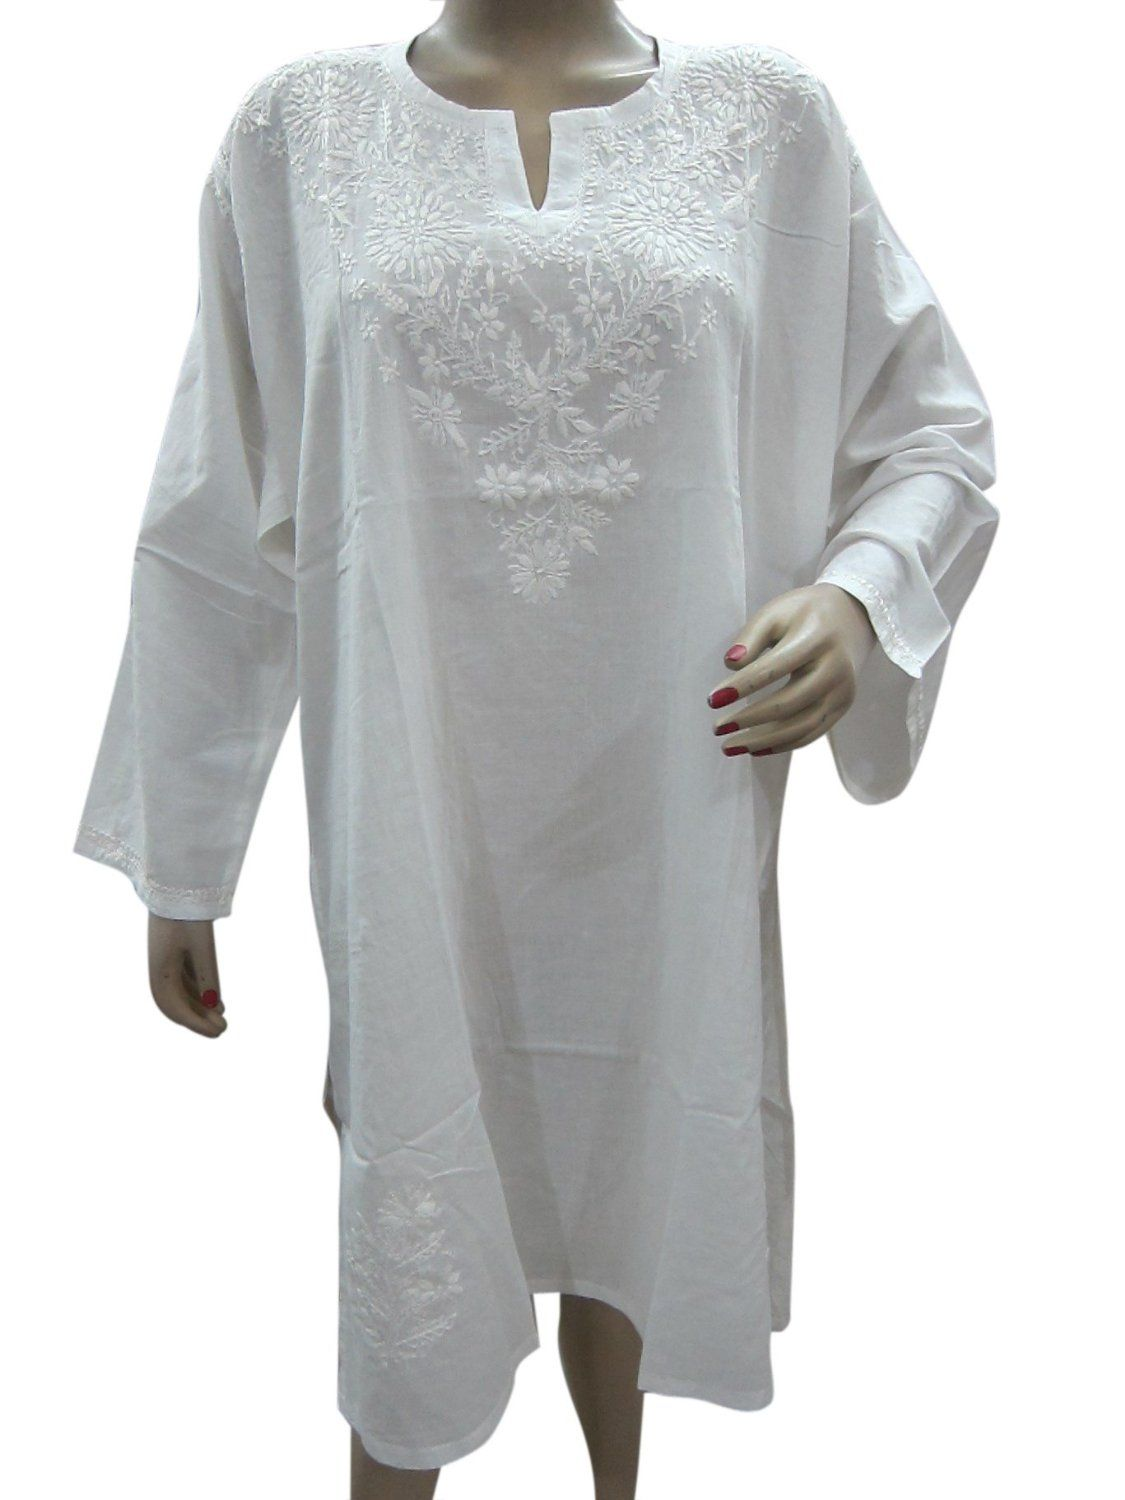 Amazon.com: Boho India Dress Kurti Top Embroidered White ...